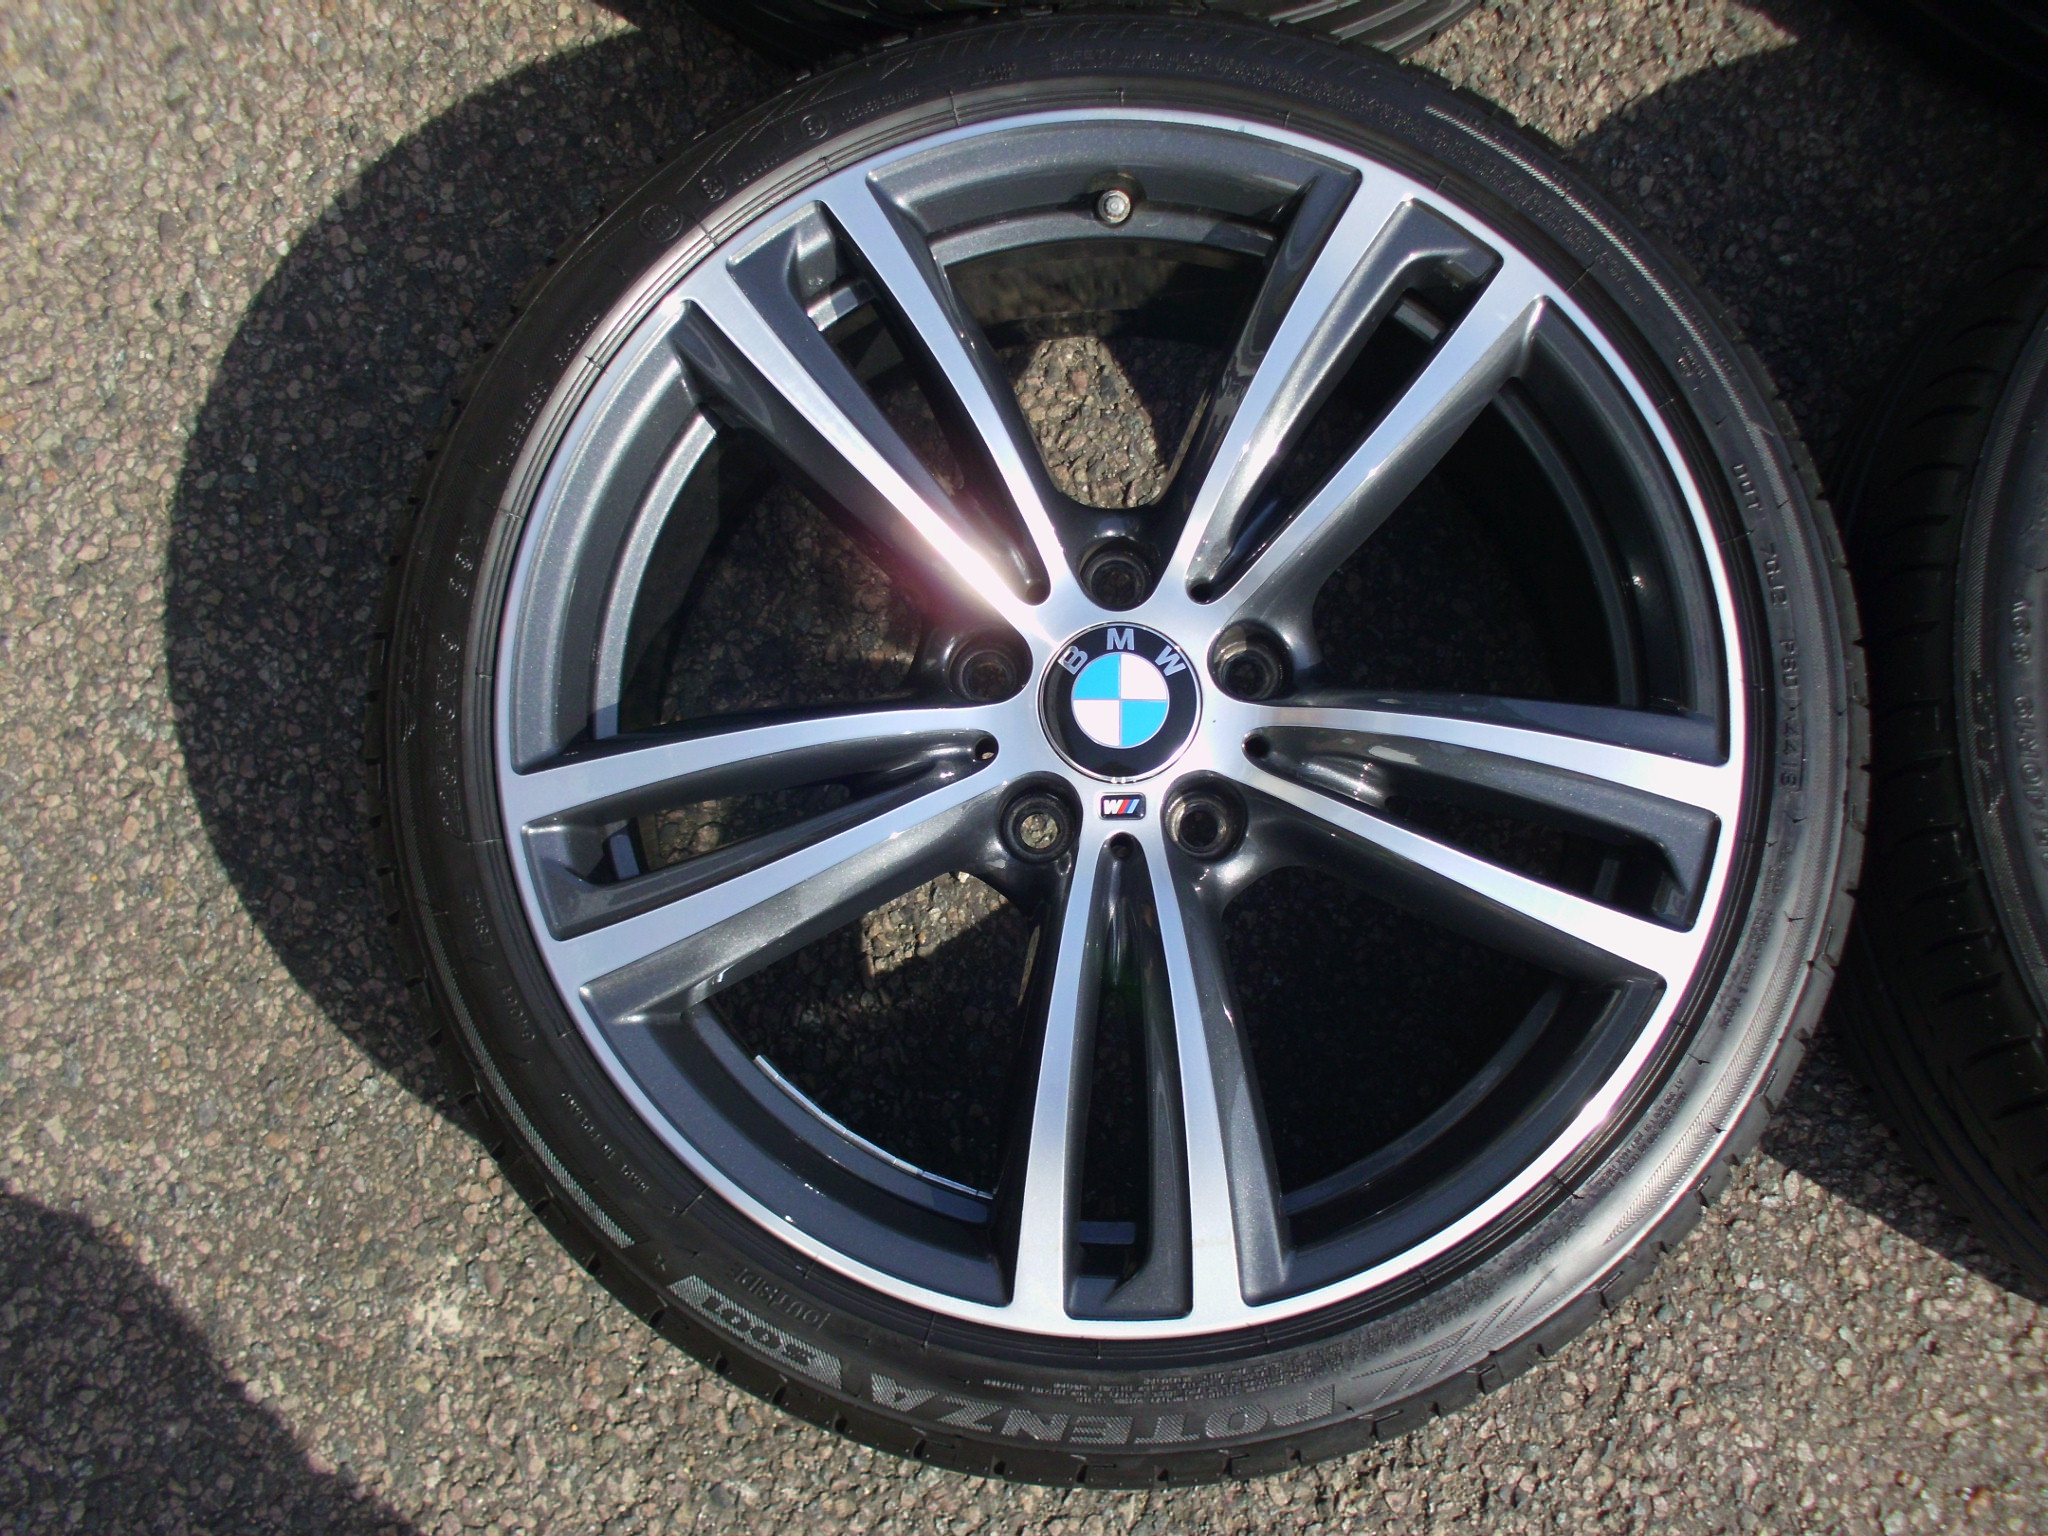 "USED 19"" GENUINE STYLE 442 F30/31 M DOUBLE SPOKE ALLOY WHEELS, VERY GOOD CONDITION INC VG BRIDGESTONE RUNFLAT TYRES AND TPMS"